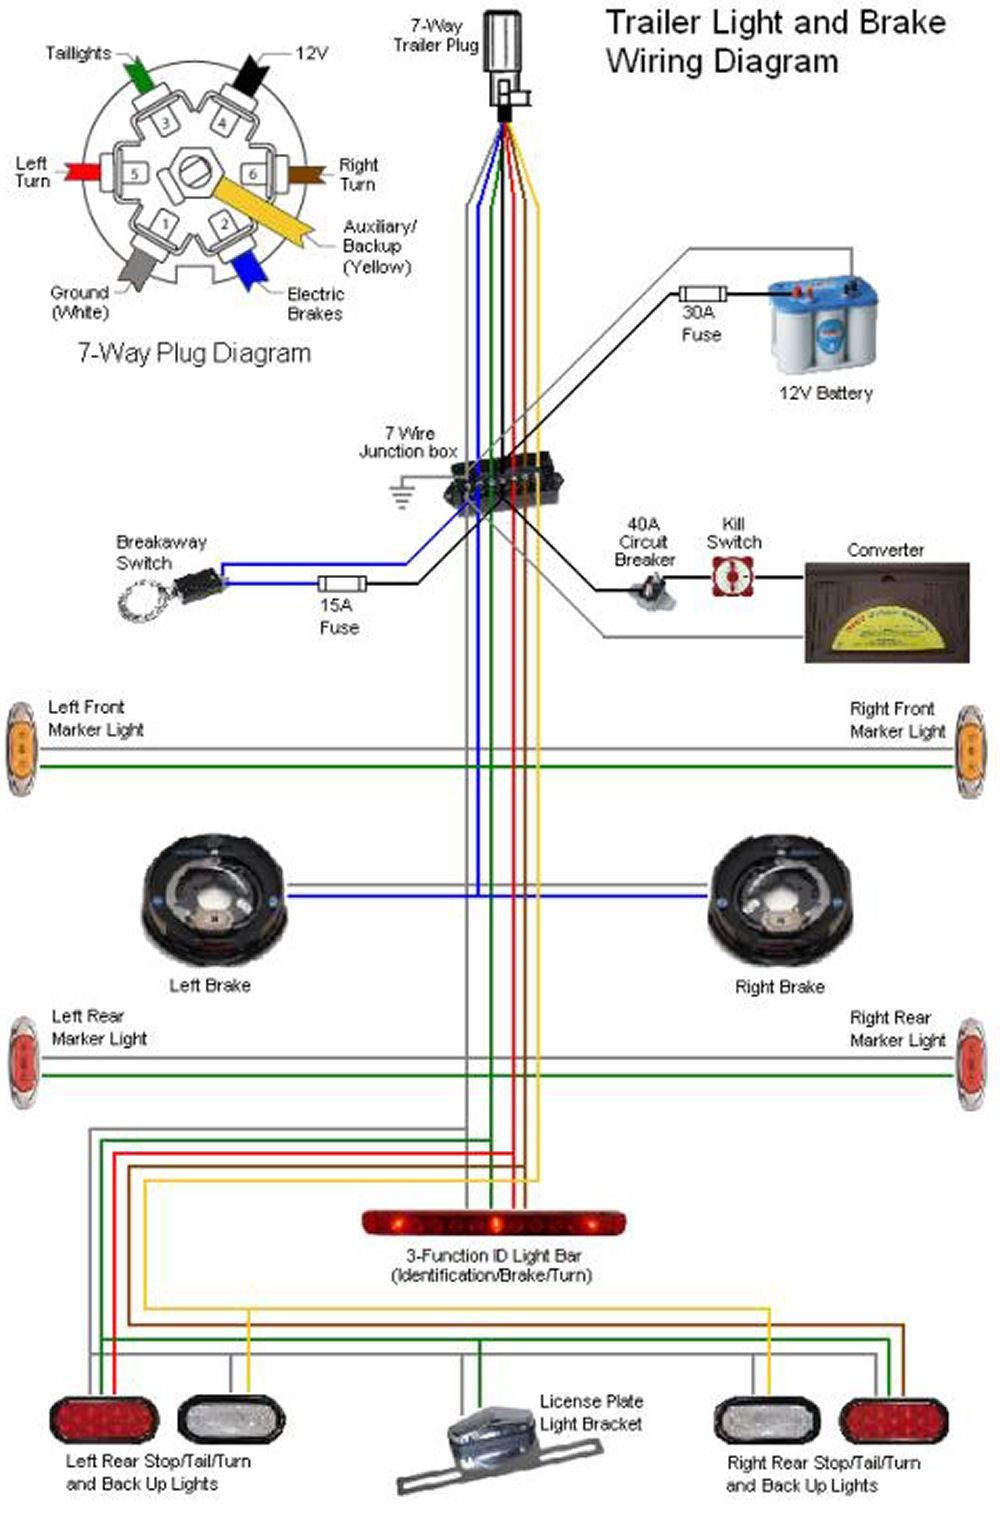 7 Way Trailer Wiring Diagram Tail Light | Wiring Diagram - Wiring Diagram For Trailer With Electric Brakes